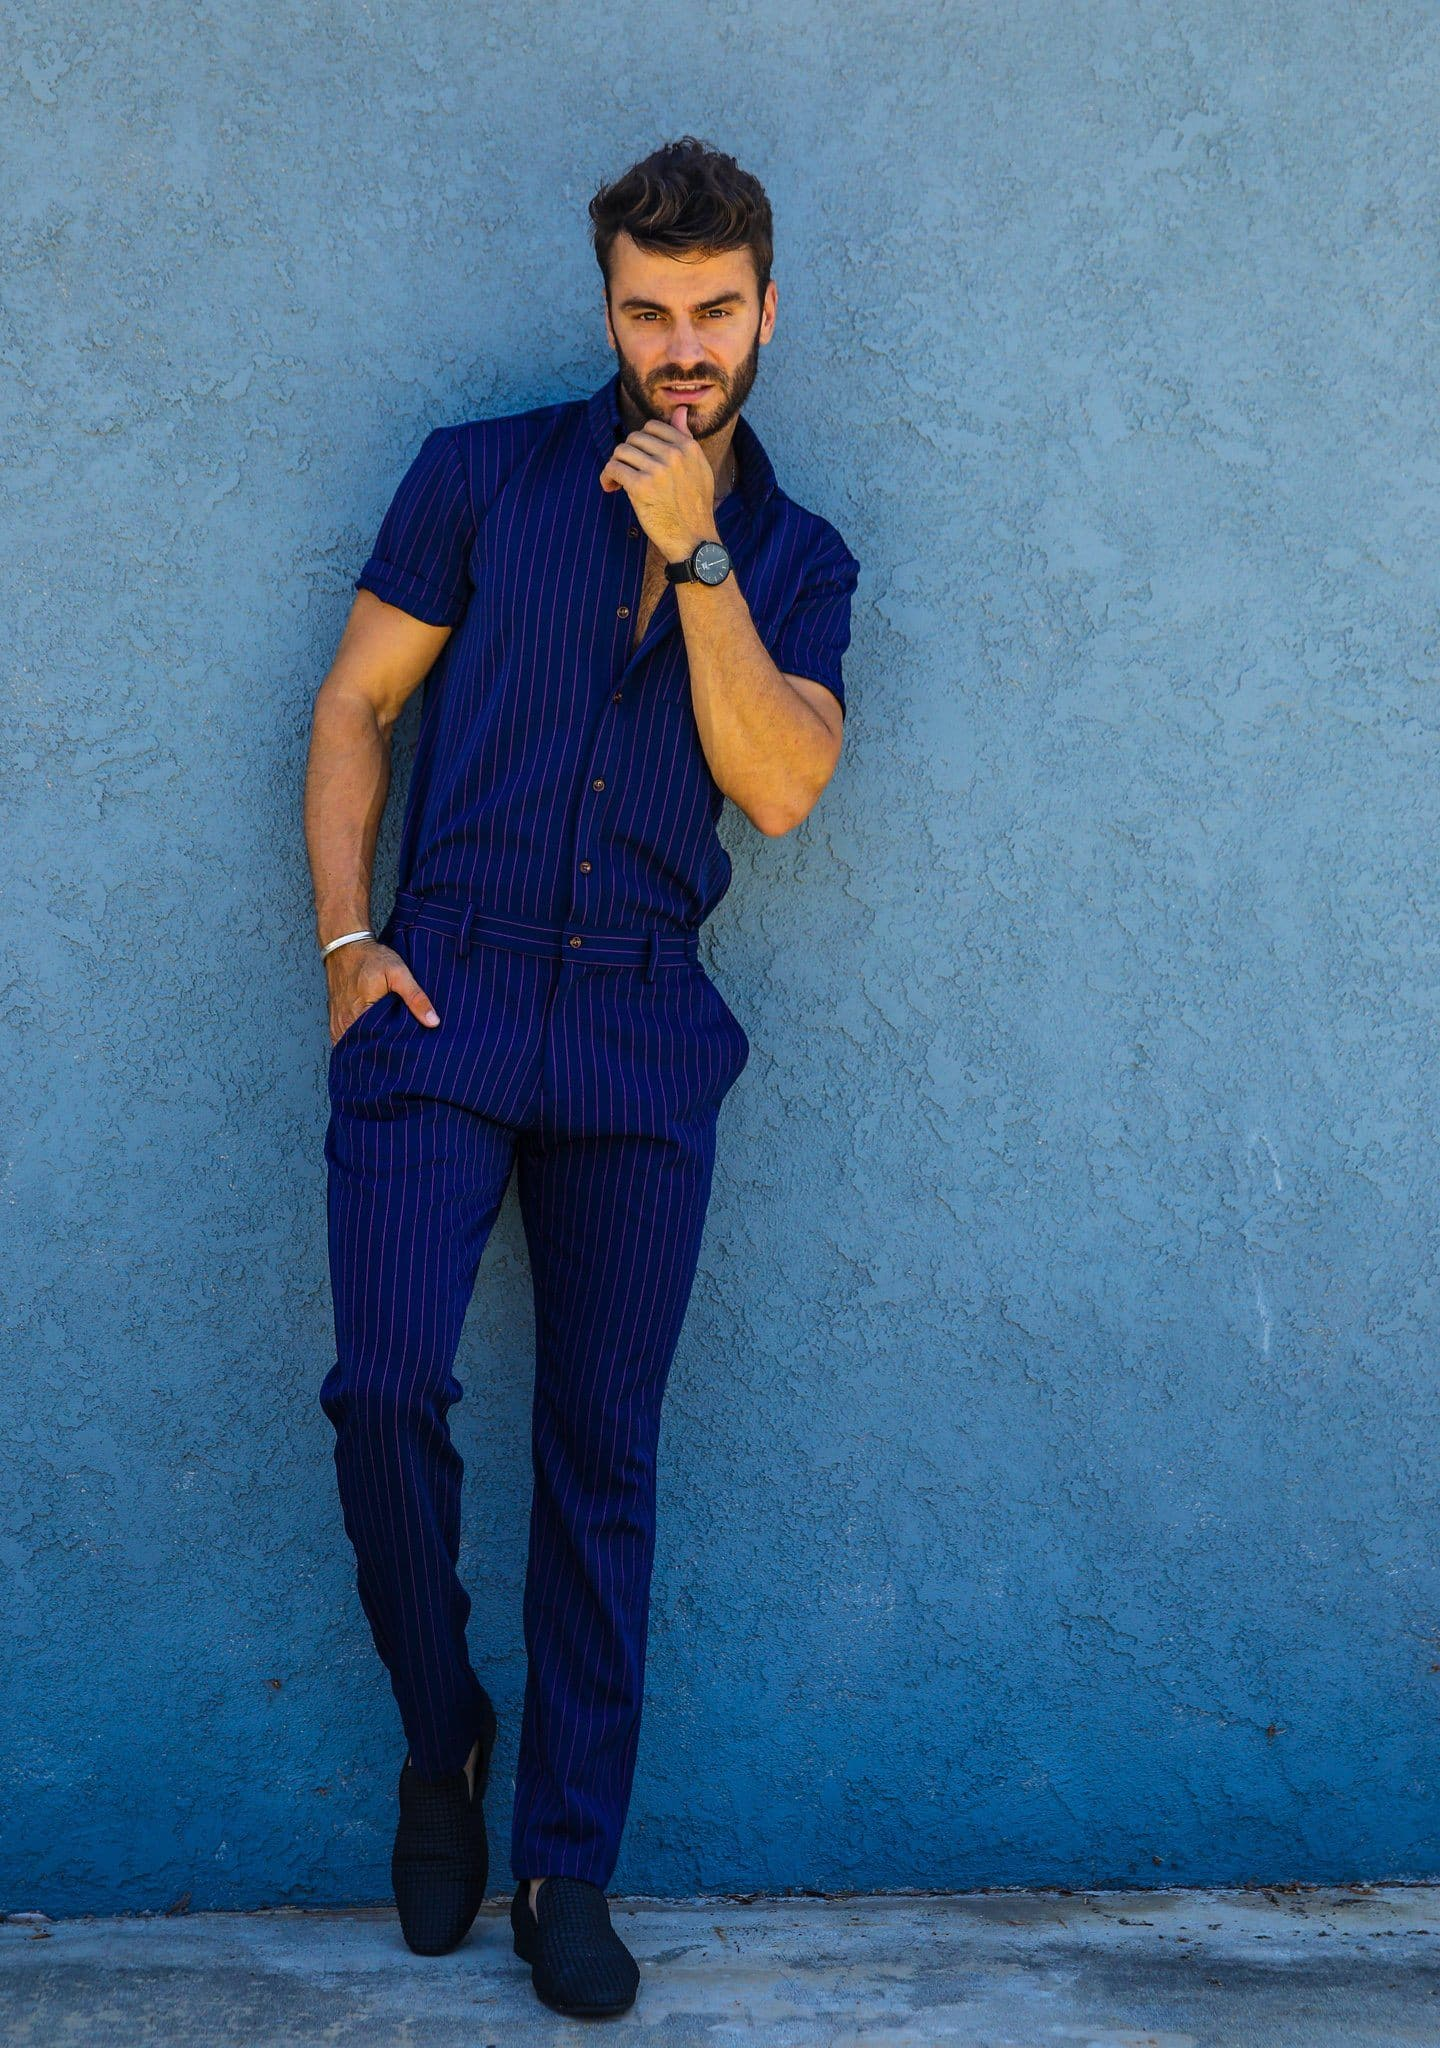 Navy Chateaux Jumpsuit - RomperJack, Mens Jumpsuit - Male Romper